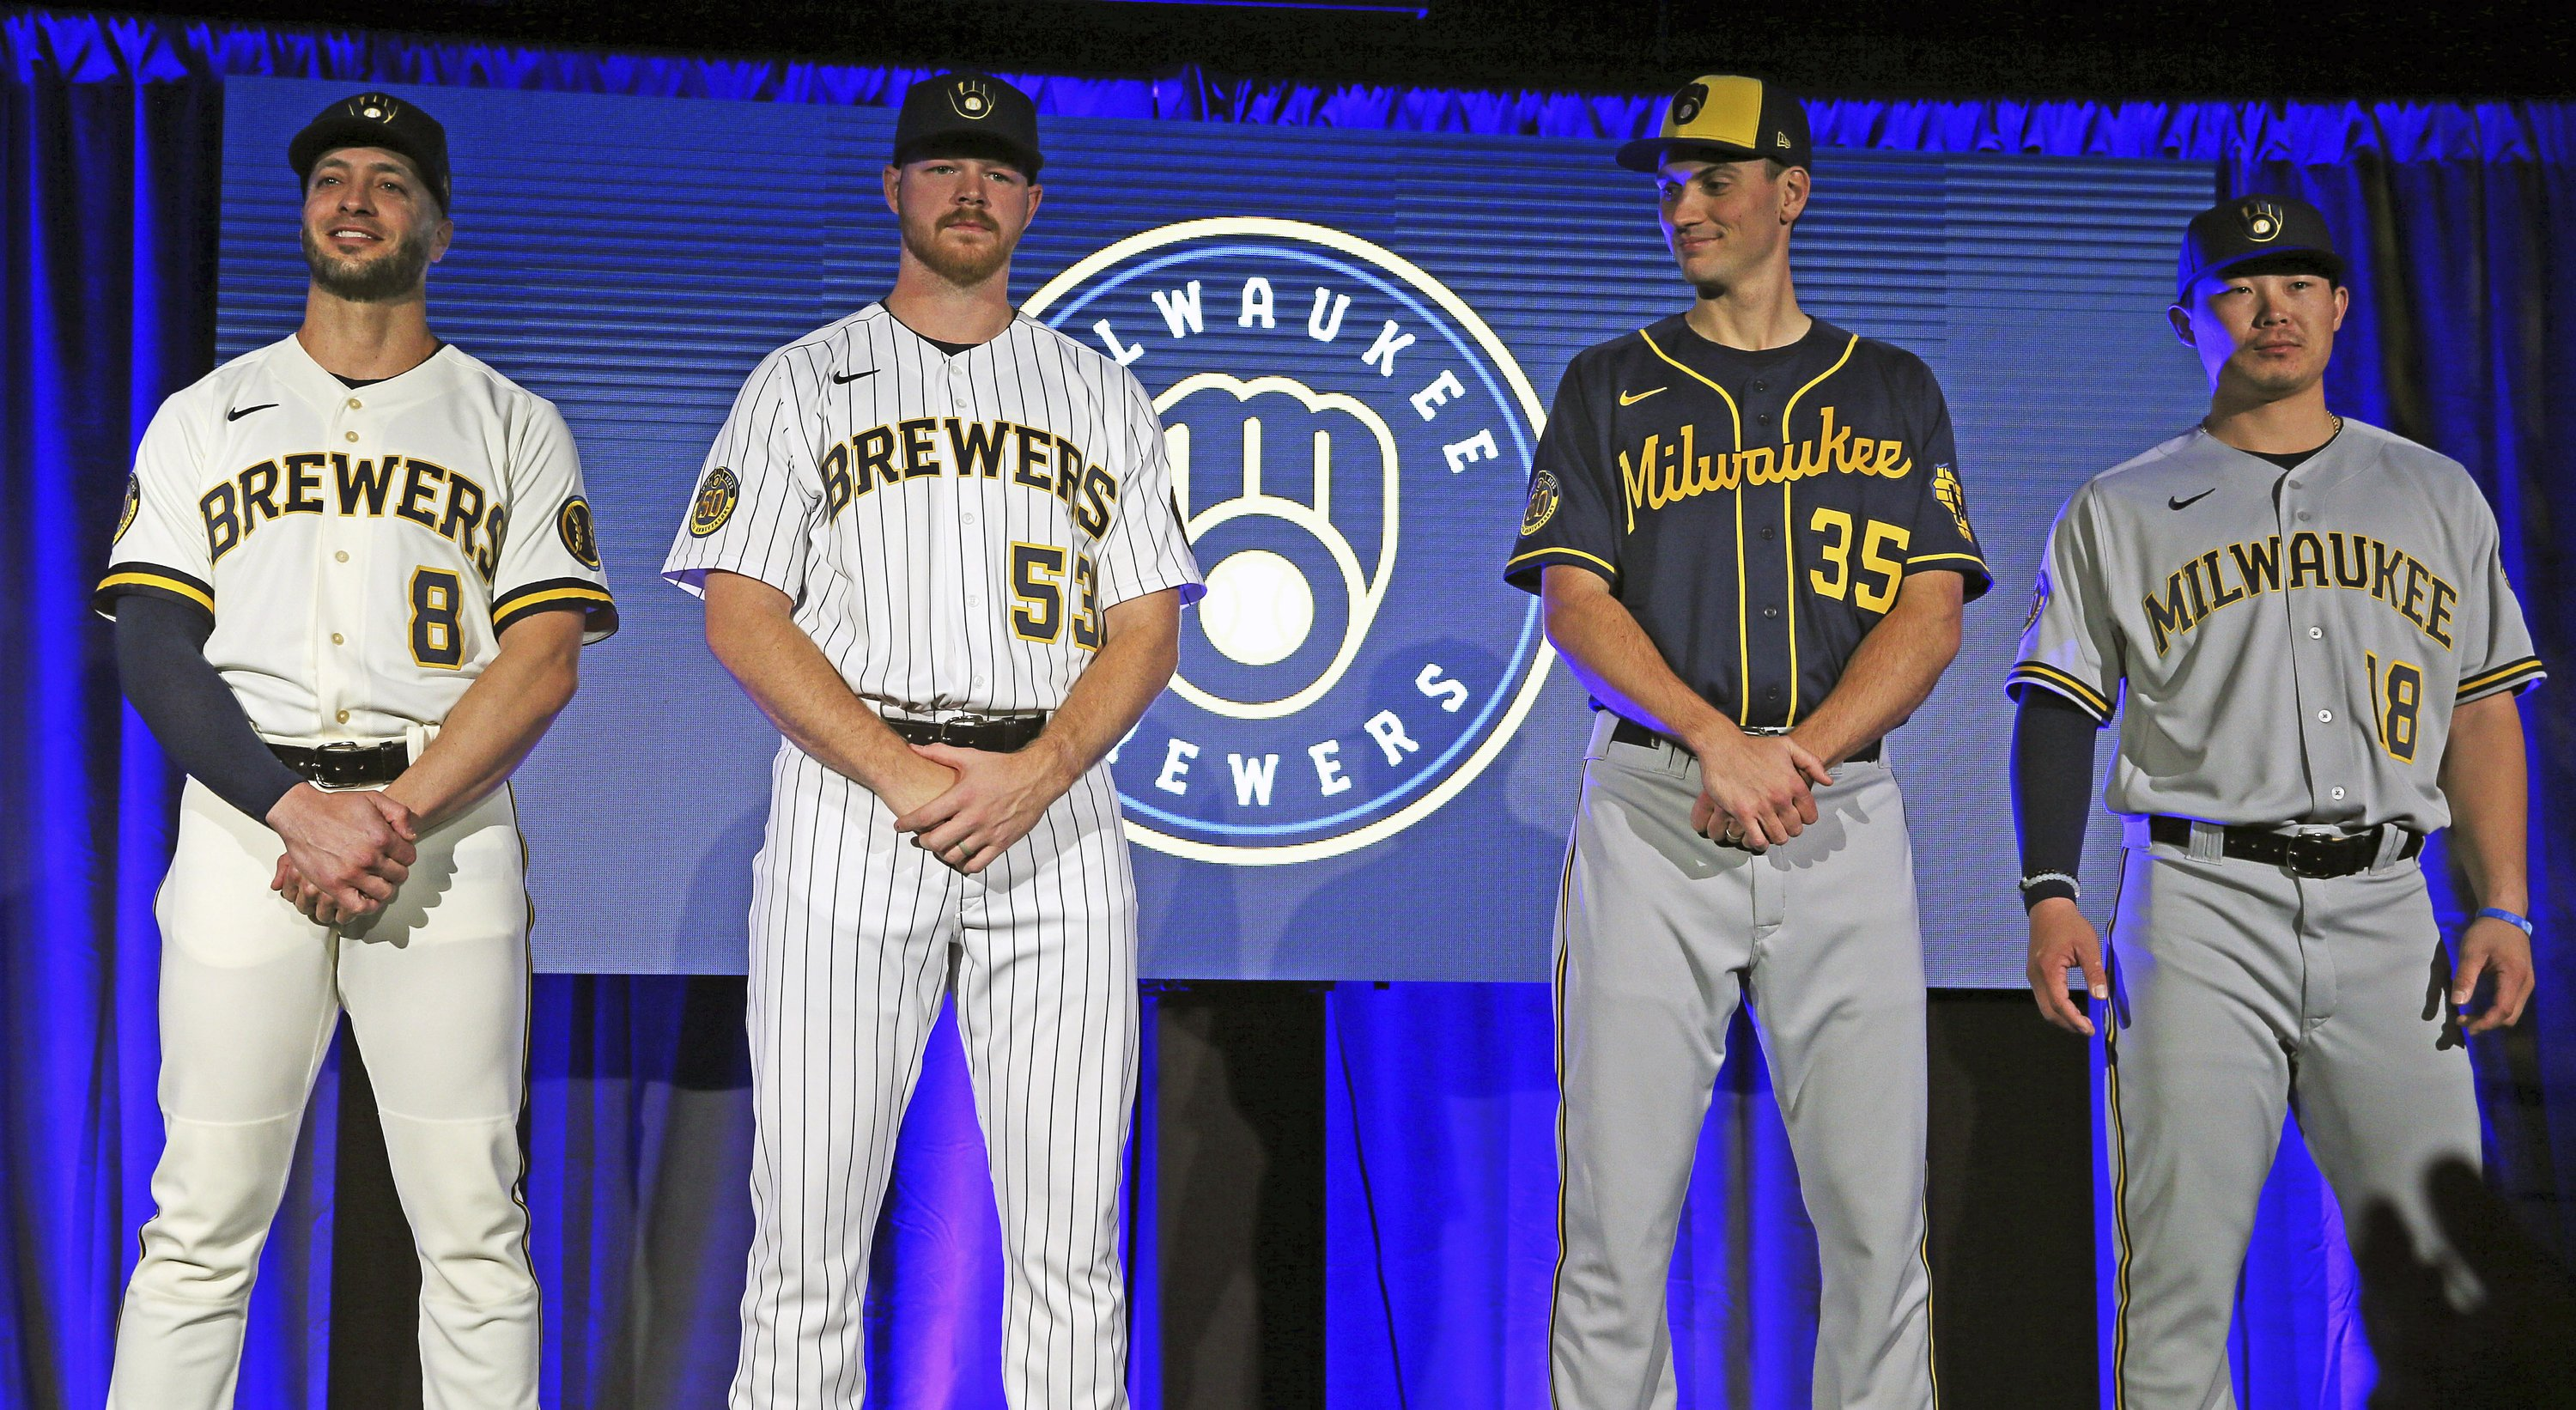 Brewers Home Opener 2020.Milwaukee Brewers Bringing Back Ball In Glove Logo In 2020